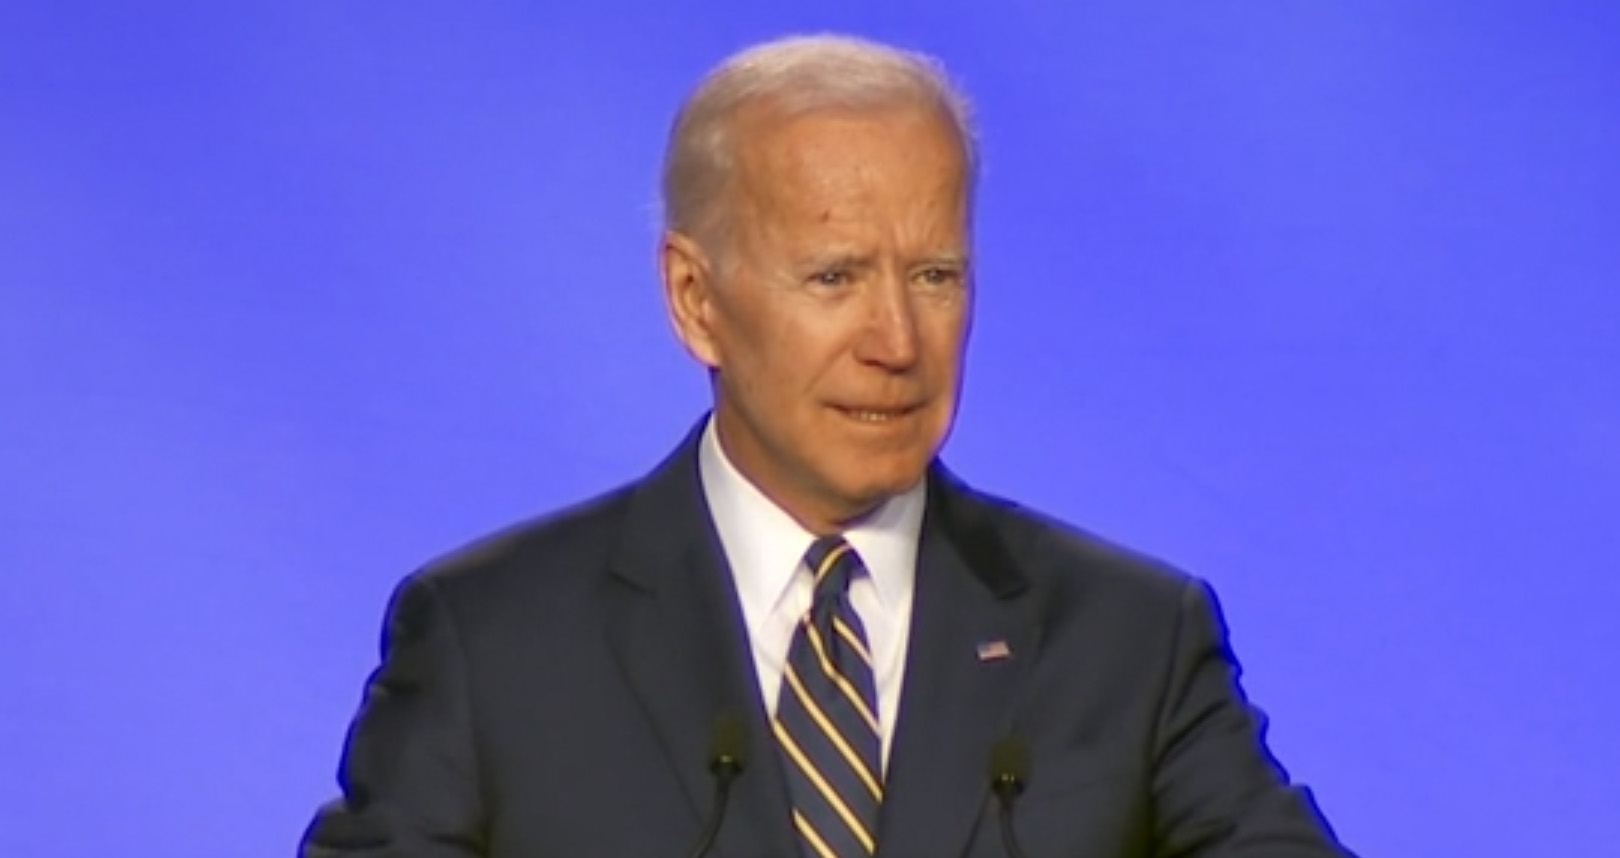 Biden fundraising may lag across the nation, but not in Connecticut